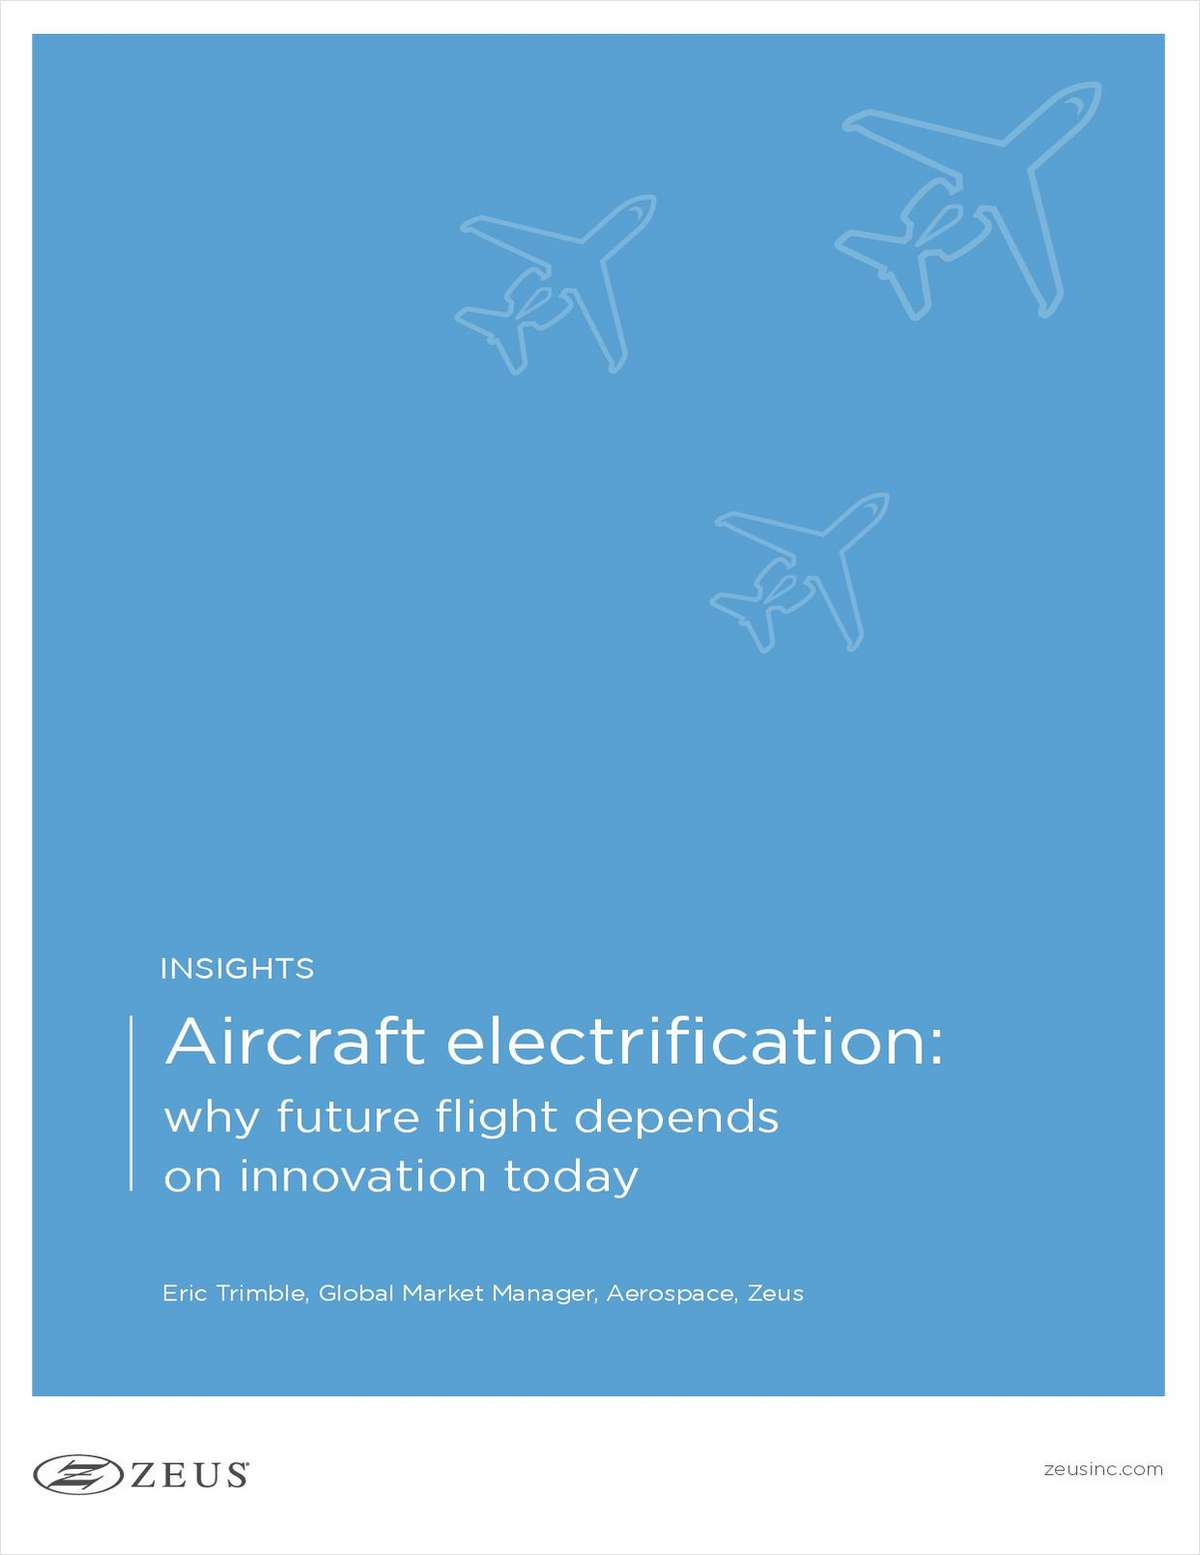 Aircraft electrification: why future flight depends on innovation today